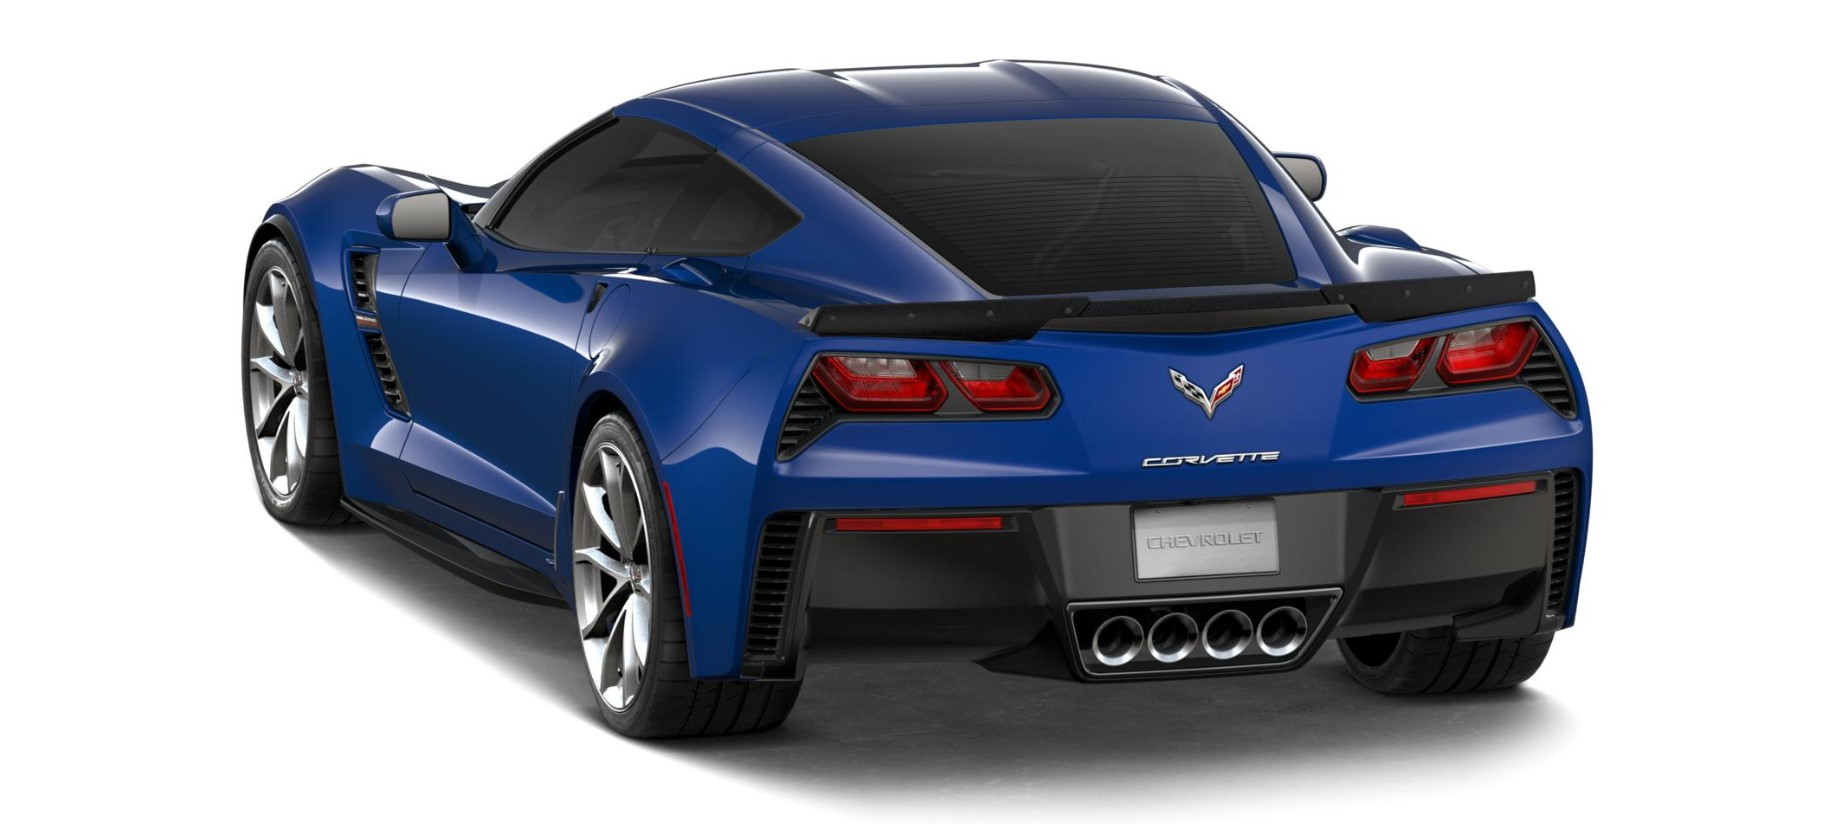 2018 Chevrolet Corvette Grand Sport Blue Rear Exterior